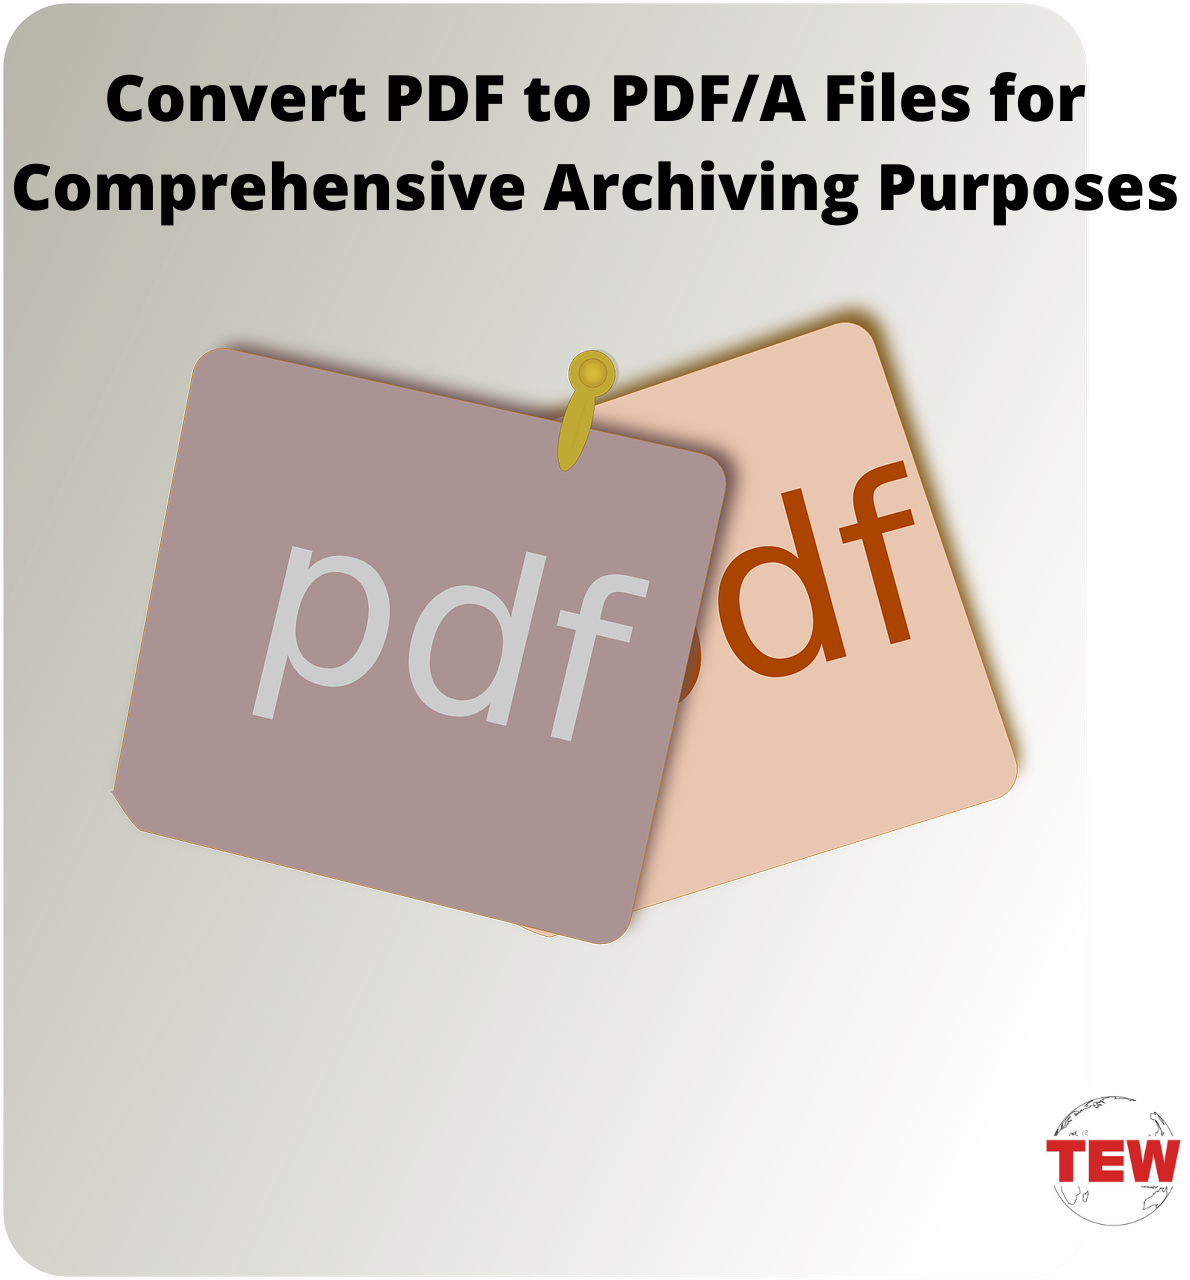 Convert PDF to PDF_A Files for Comprehensive Archiving Purposes